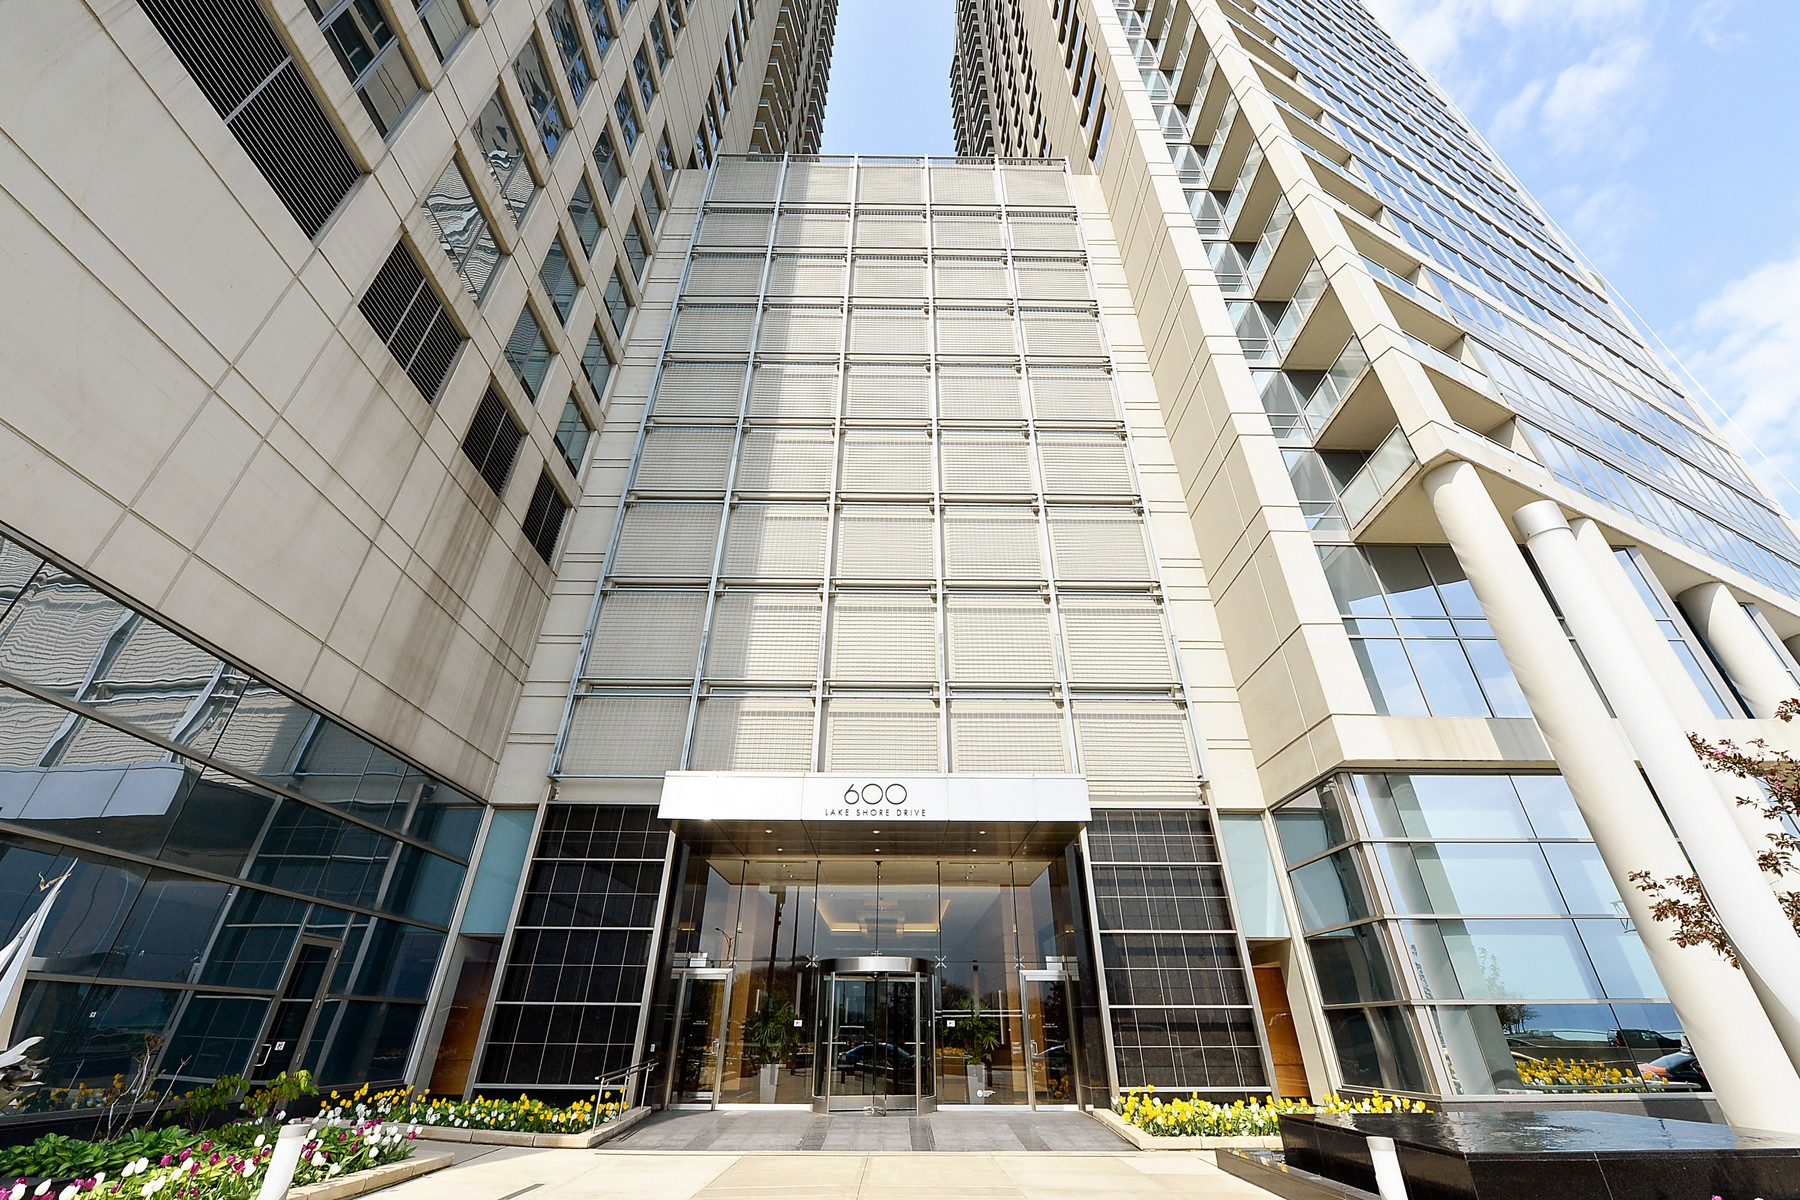 단독 가정 주택 용 매매 에 Spacious and Elegant on Lake Shore Drive 600 N Lake Shore Drive Unit 4210 Near North Side, Chicago, 일리노이즈, 60611 미국